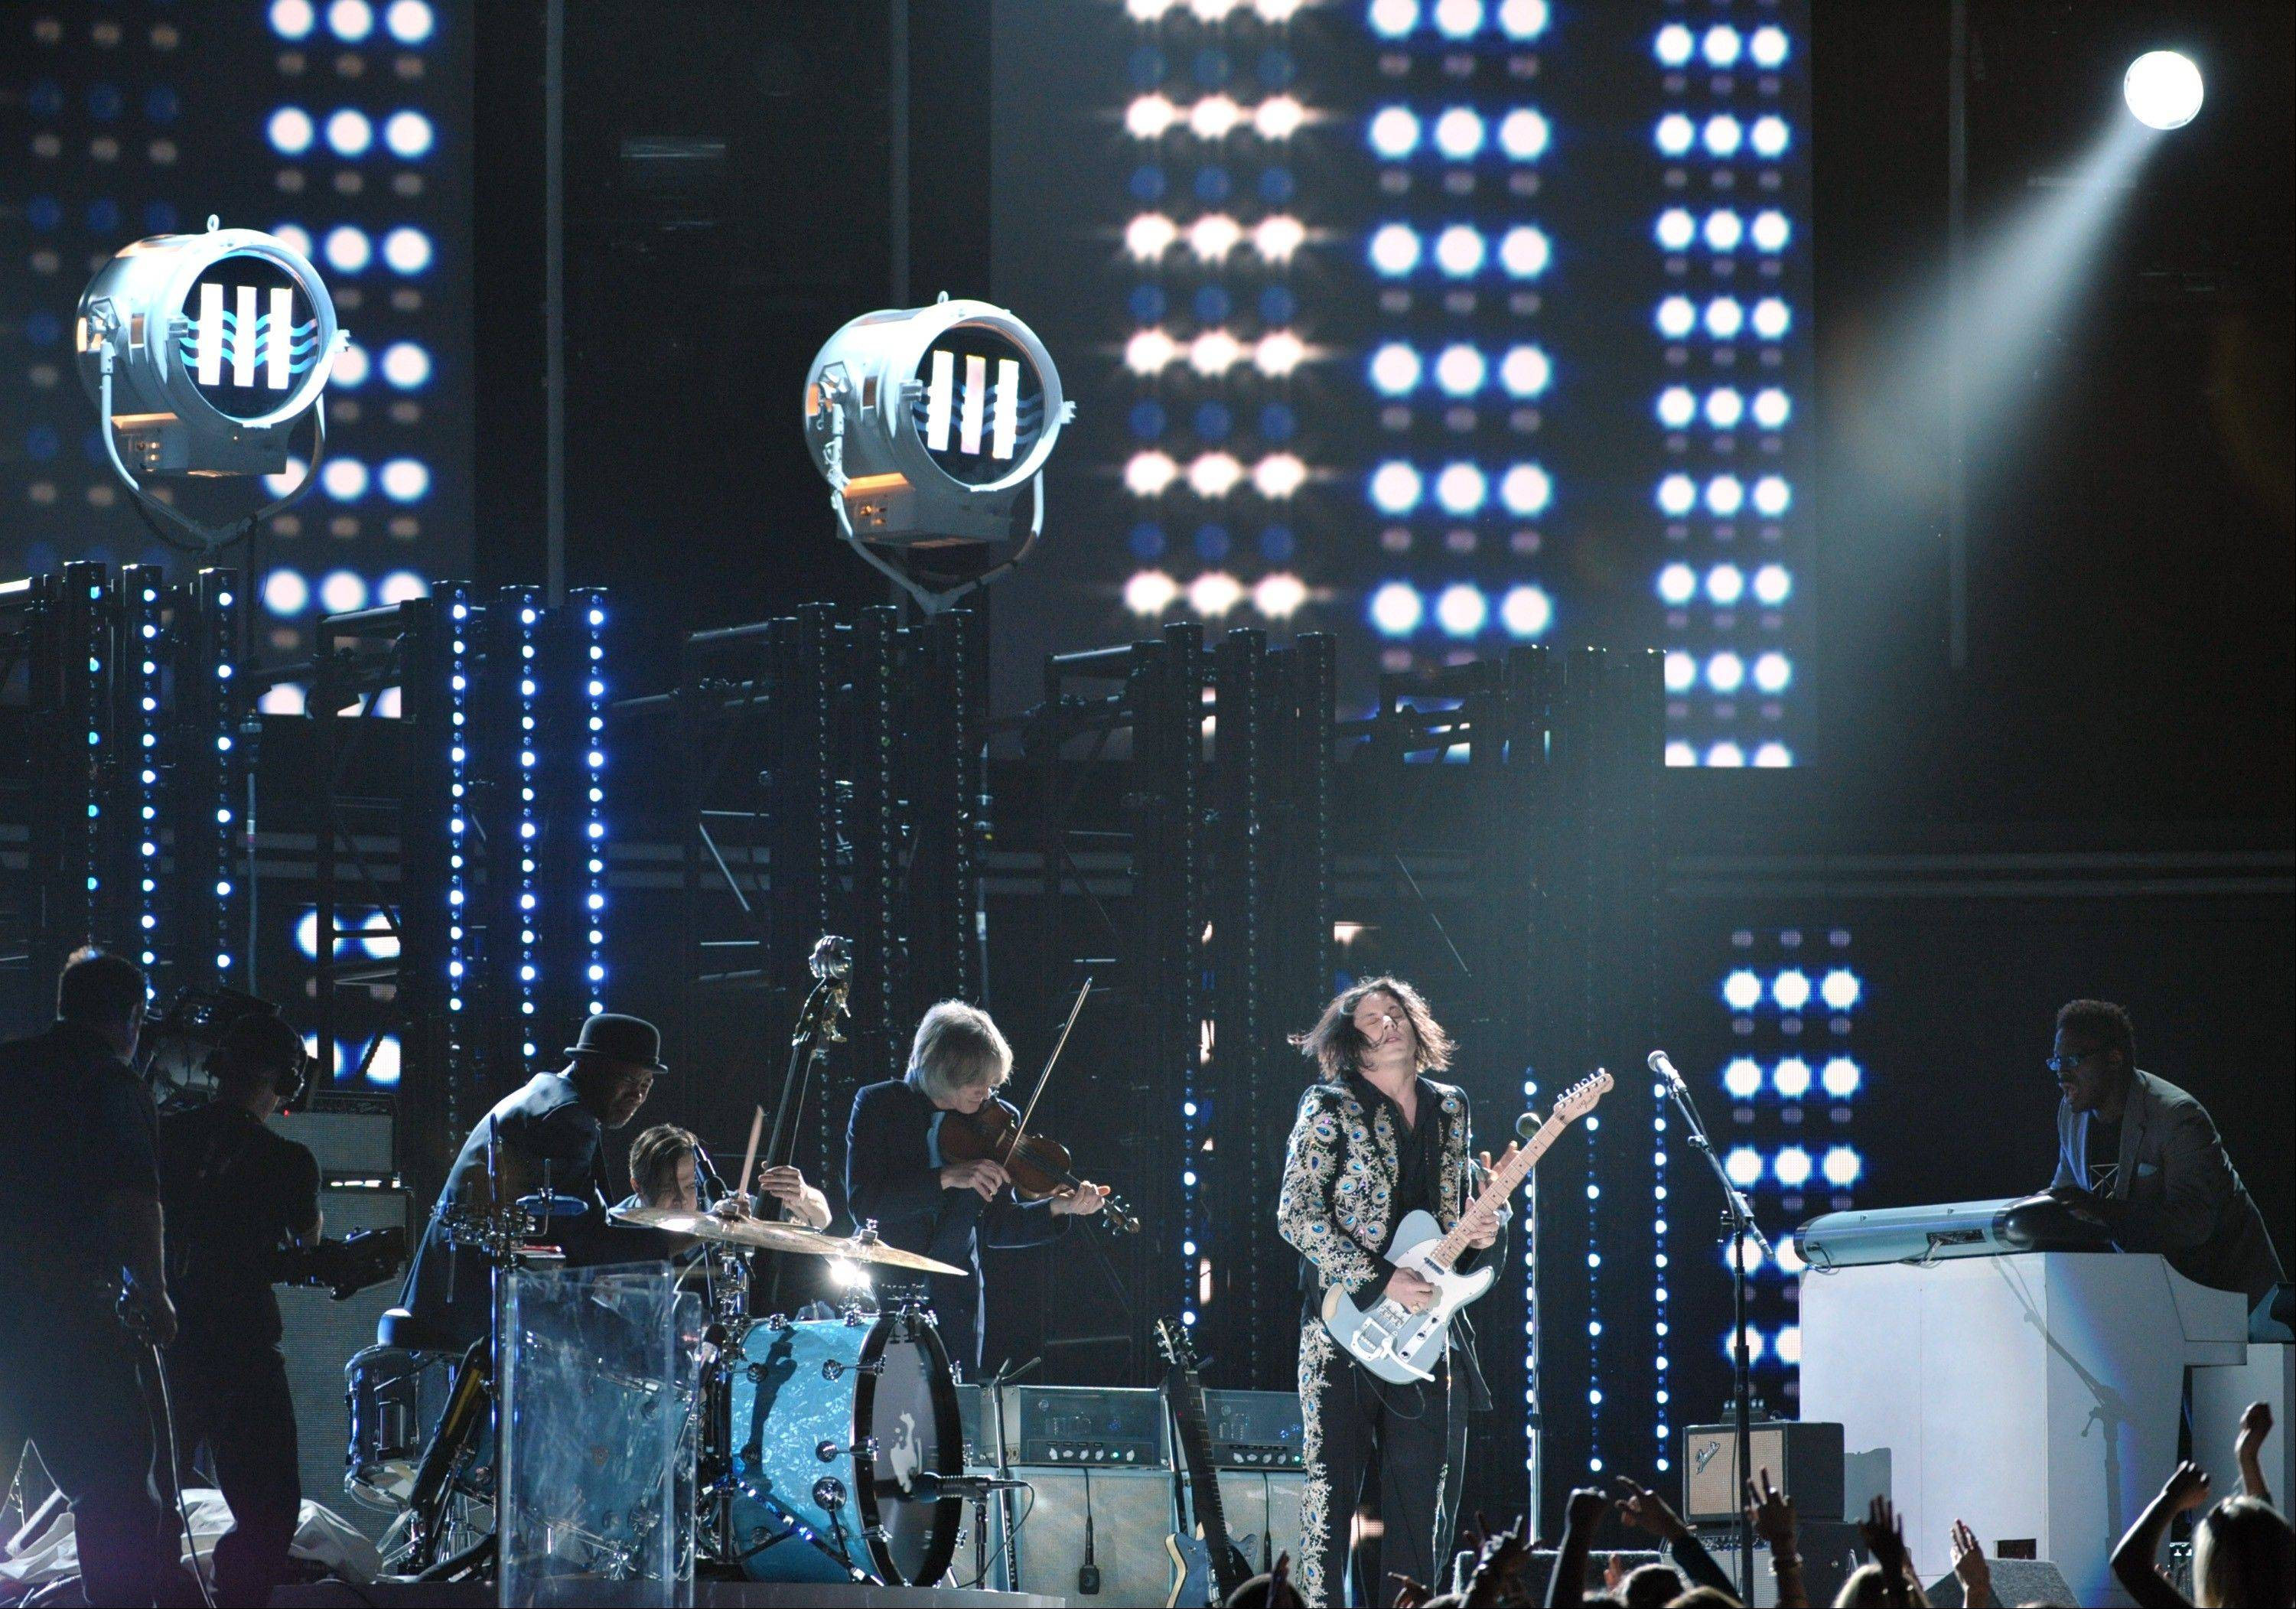 Jack White performs at the 55th annual Grammy Awards on Sunday, Feb. 10, 2013, in Los Angeles.